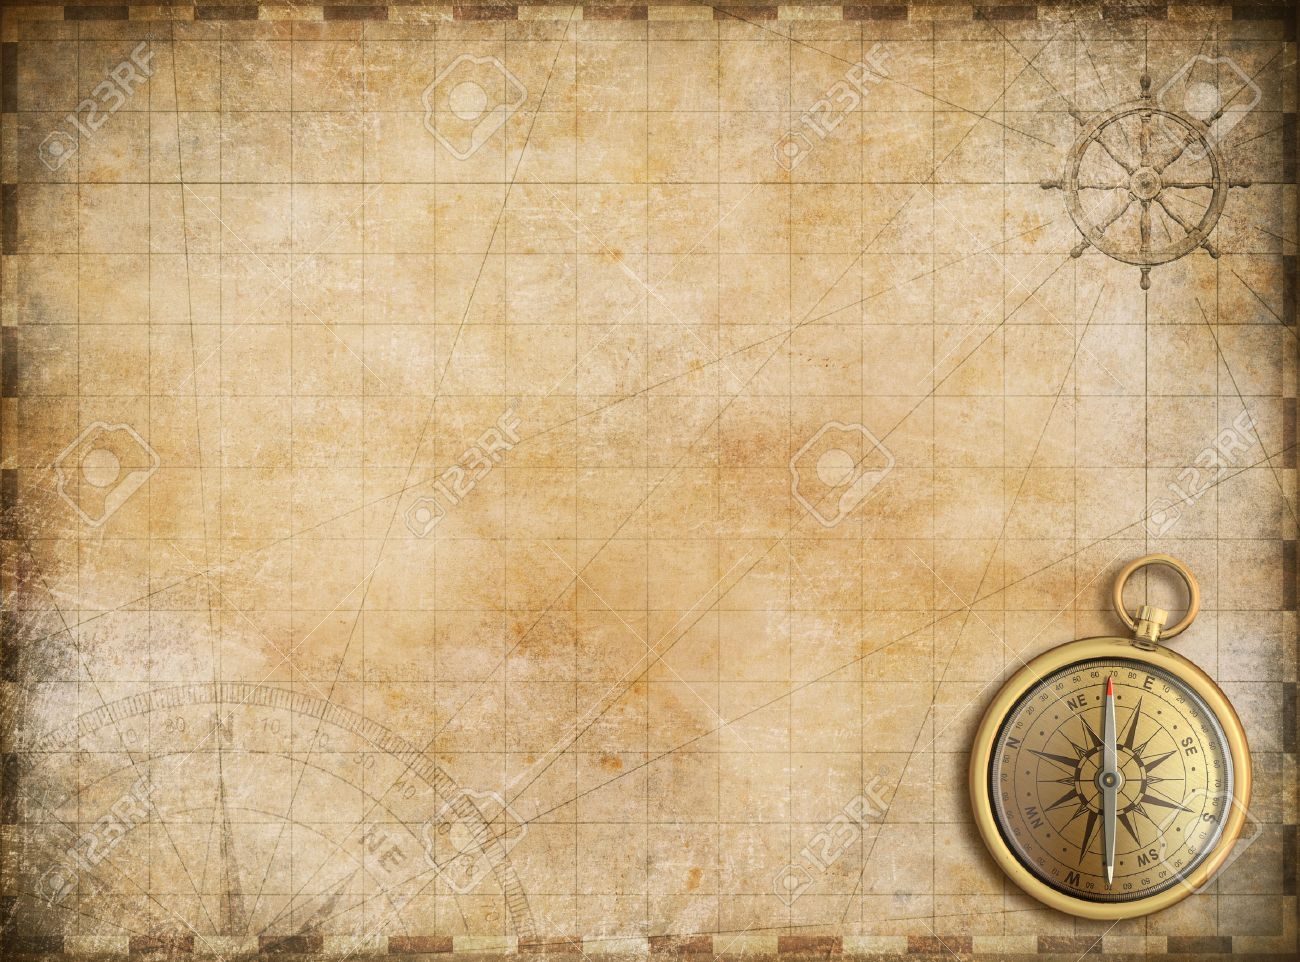 Old Map With Brass Compass As Exploration And Adventure Background 1300x962